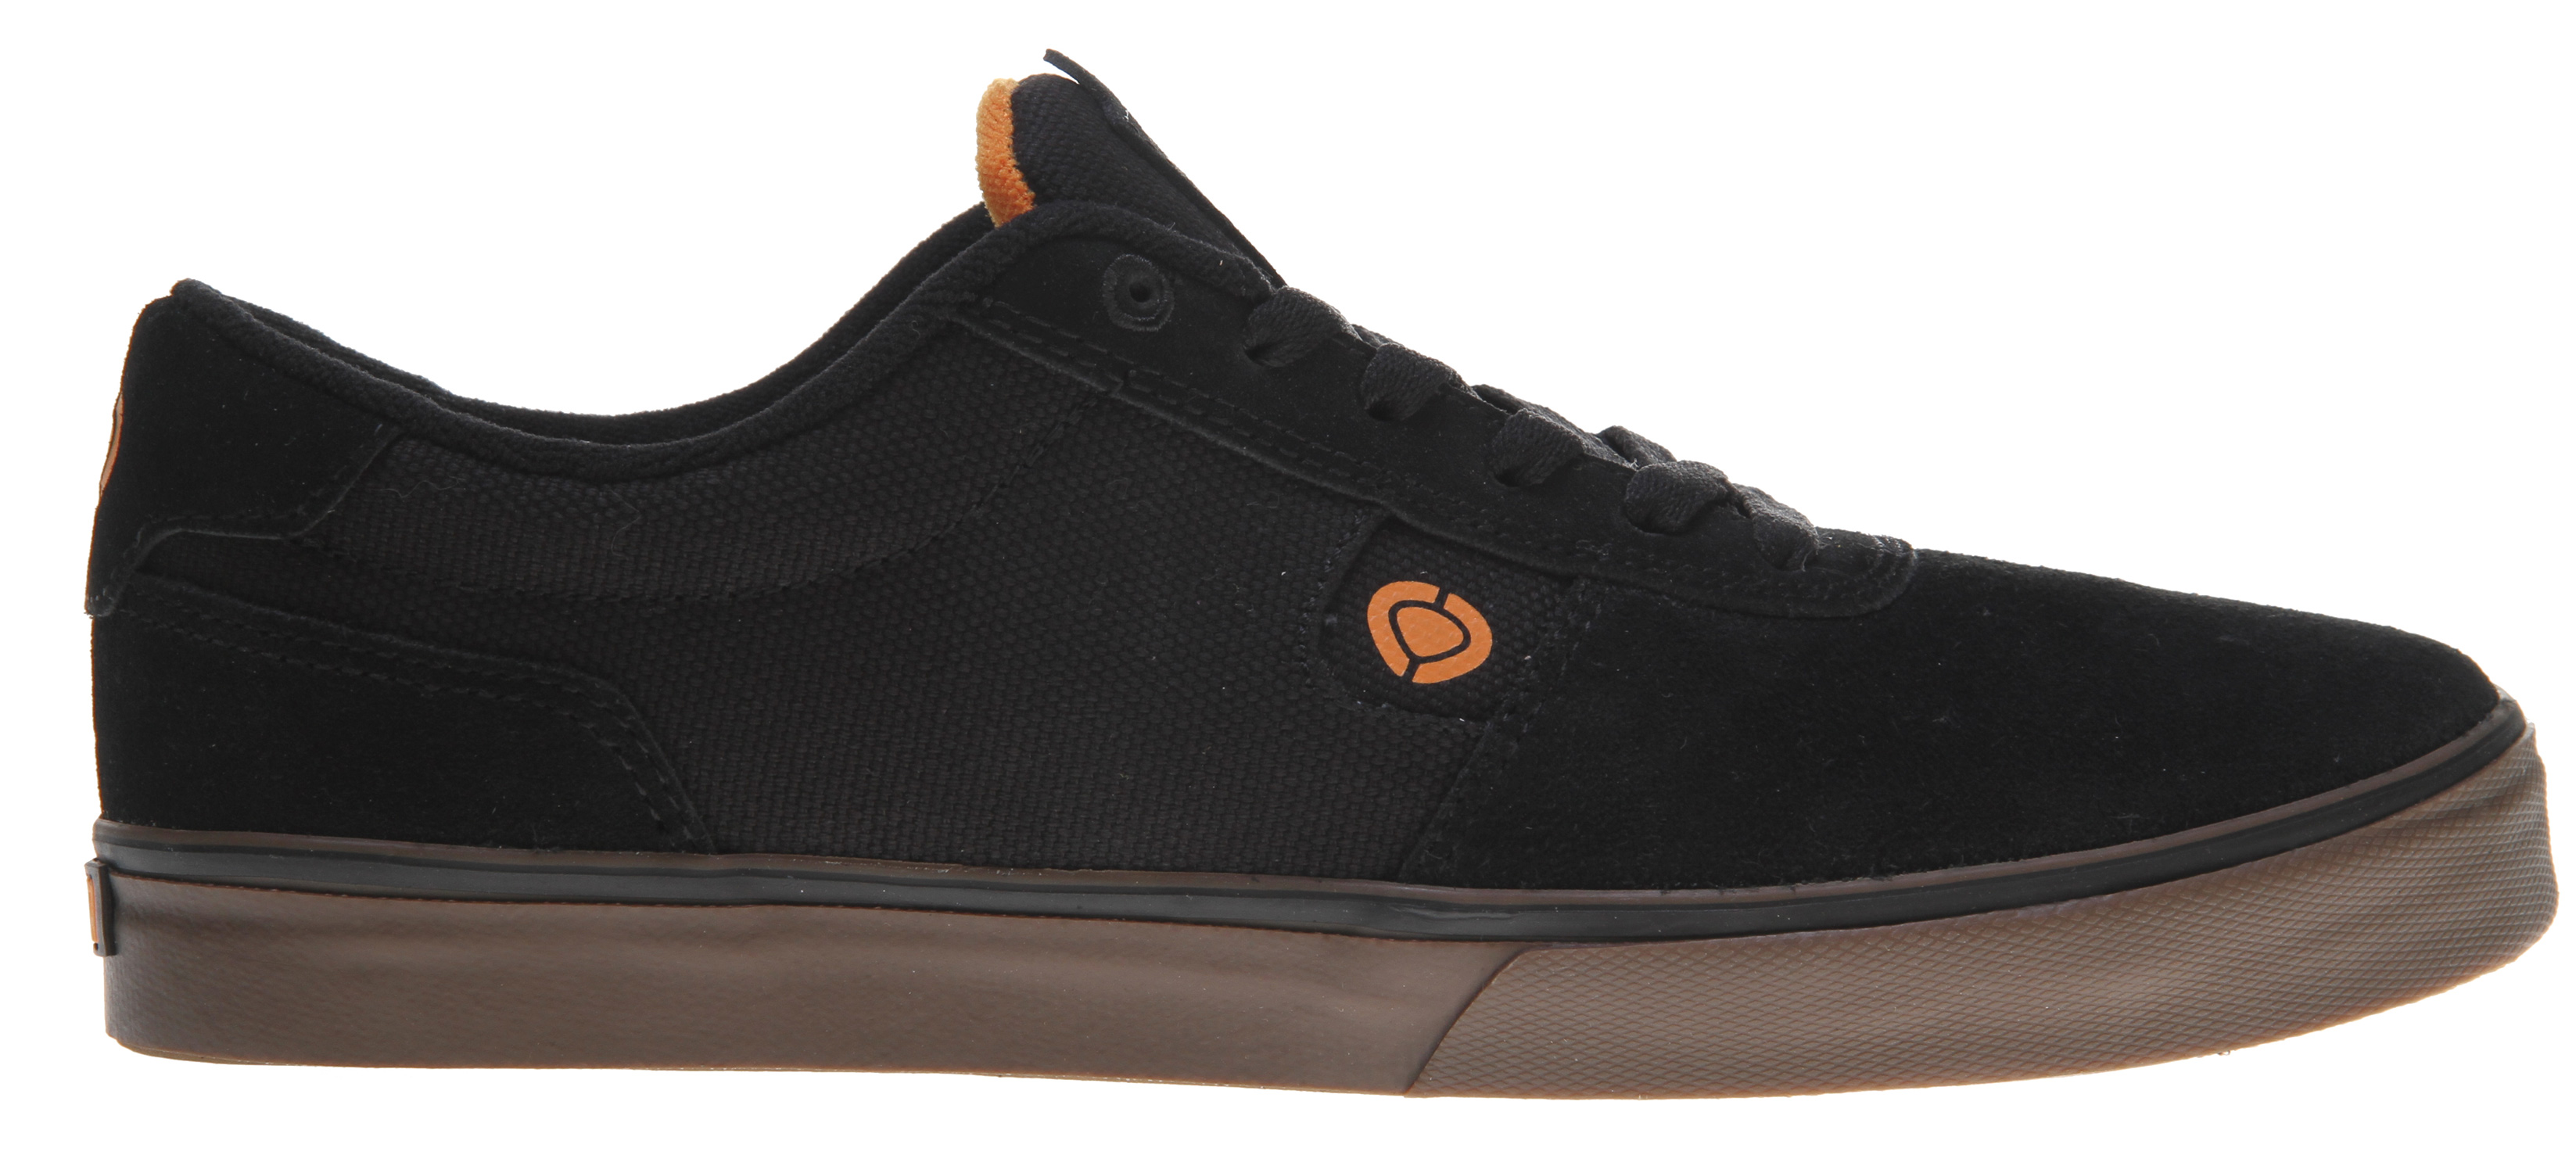 Skateboard Key Features of the Circa Lamb Skate Shoes: David Gravette pro model Genuine vulcanized construction Circa herringbone bottom tread FusionGrip outsole rubber for ultimate grip - $38.95